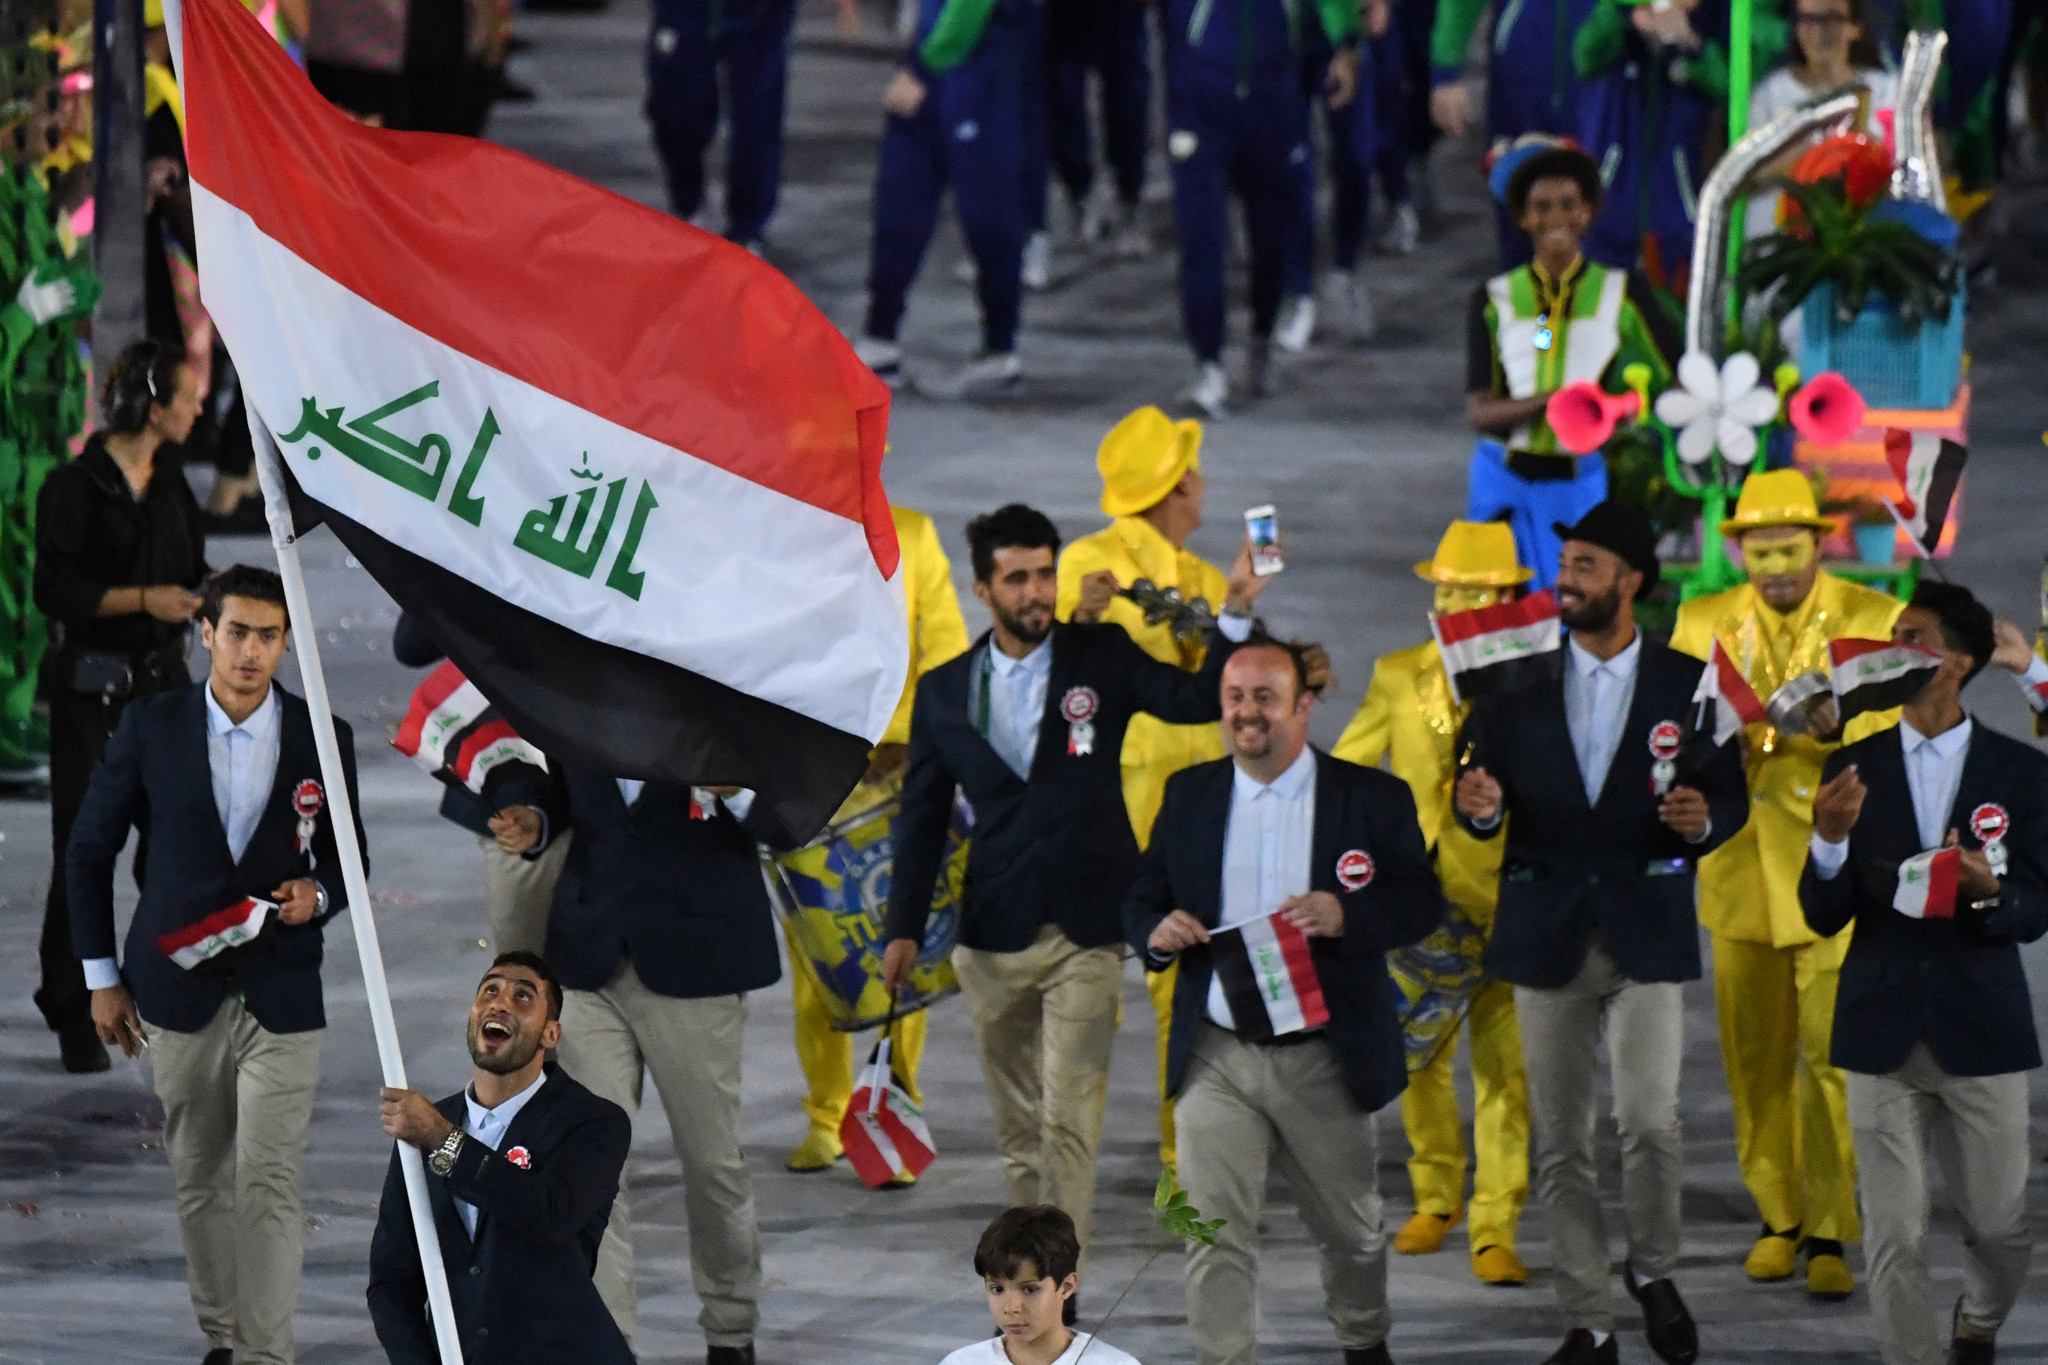 Iraqi athletes pictured marching at the Opening Ceremony of the Rio 2016 Olympic Games ©Getty Images